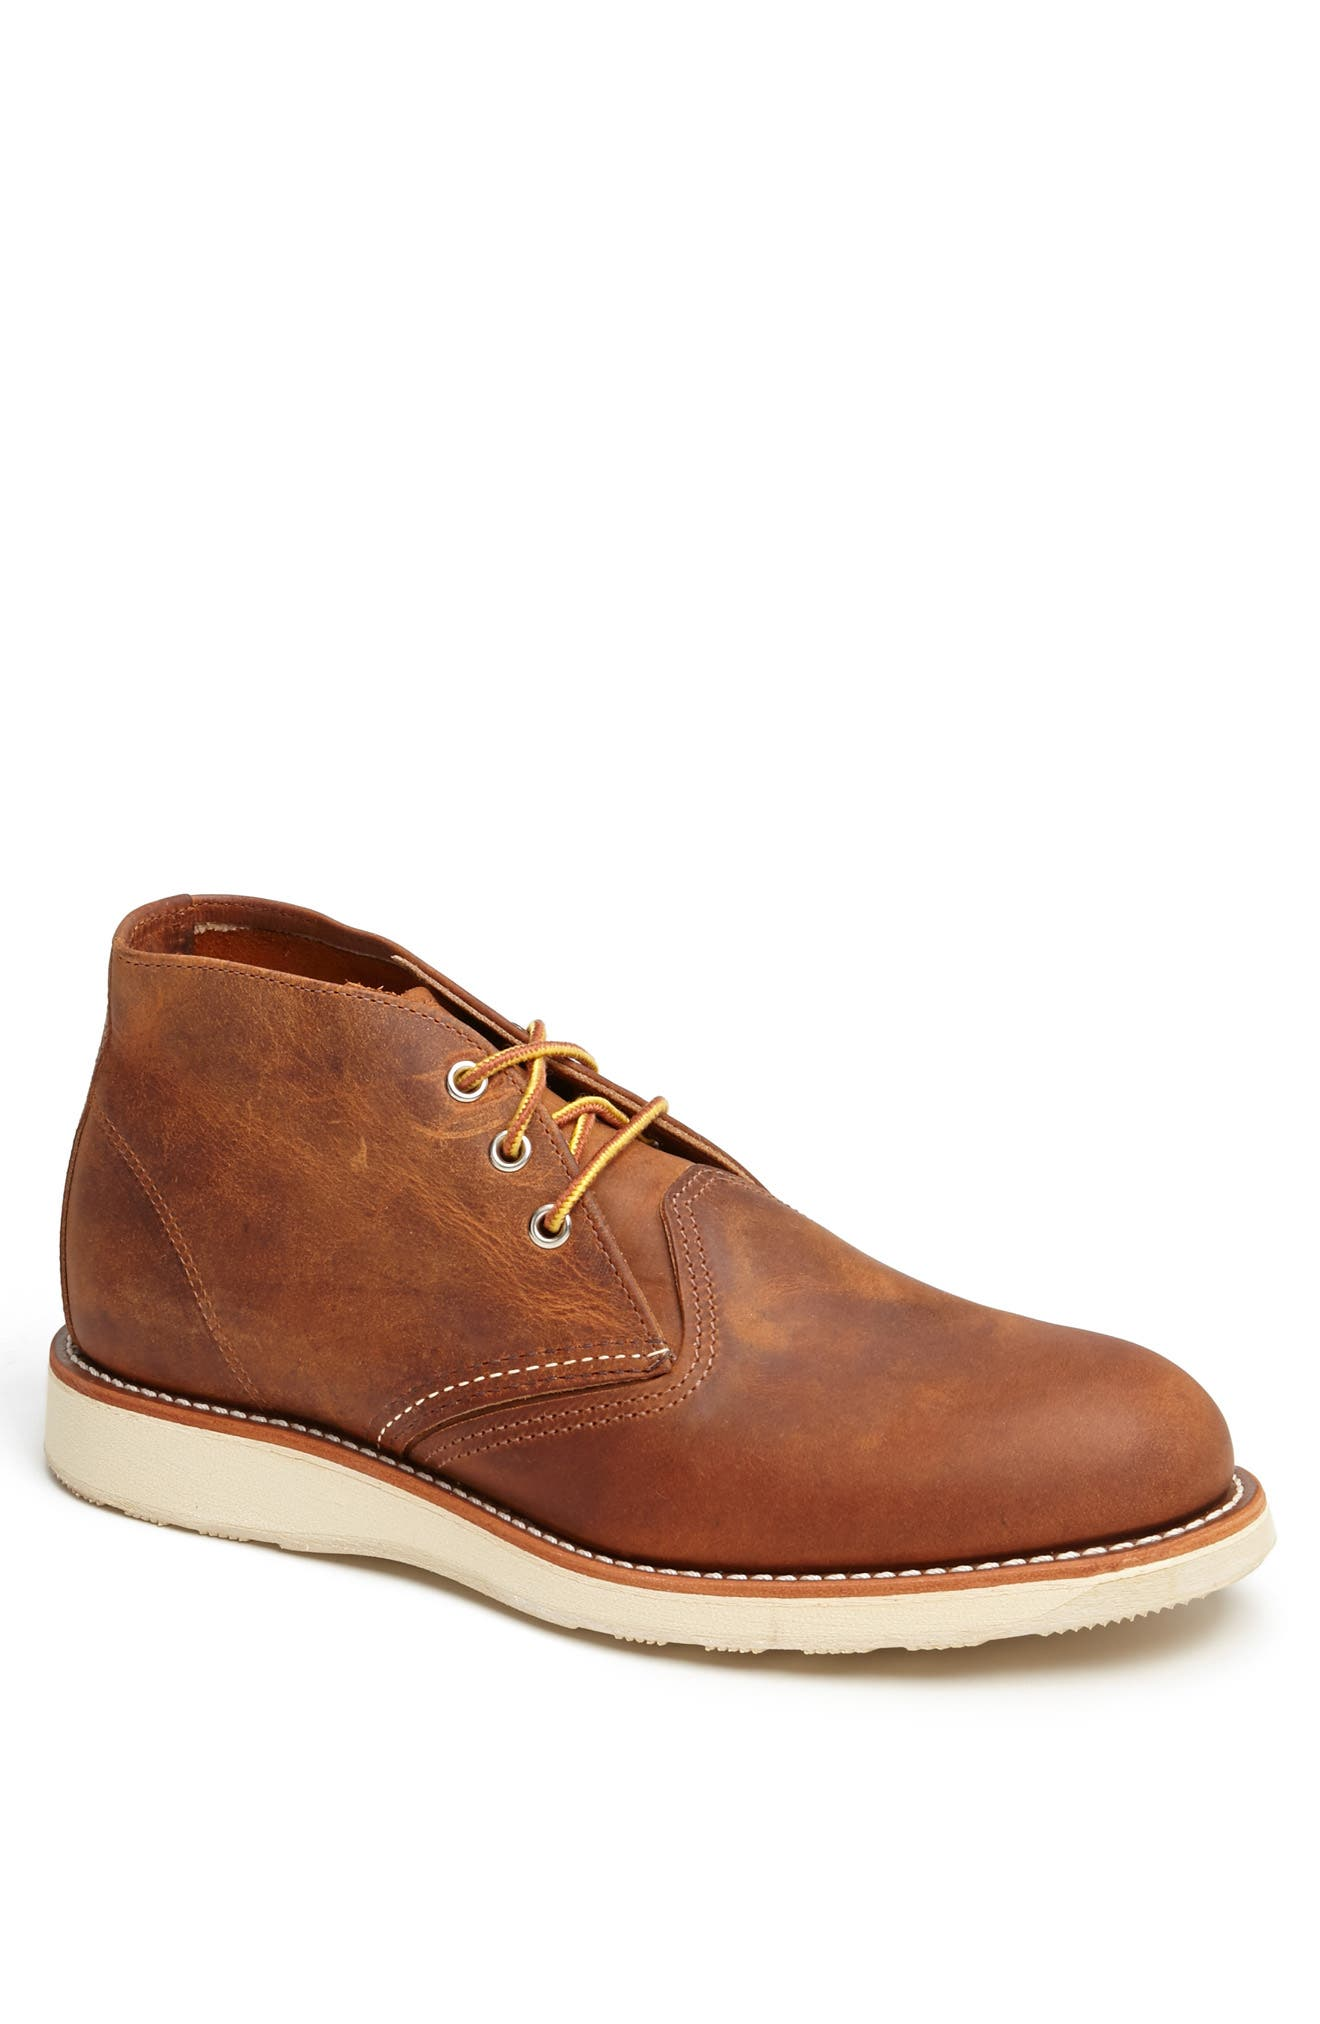 'Classic' Chukka Boot,                         Main,                         color, Copper